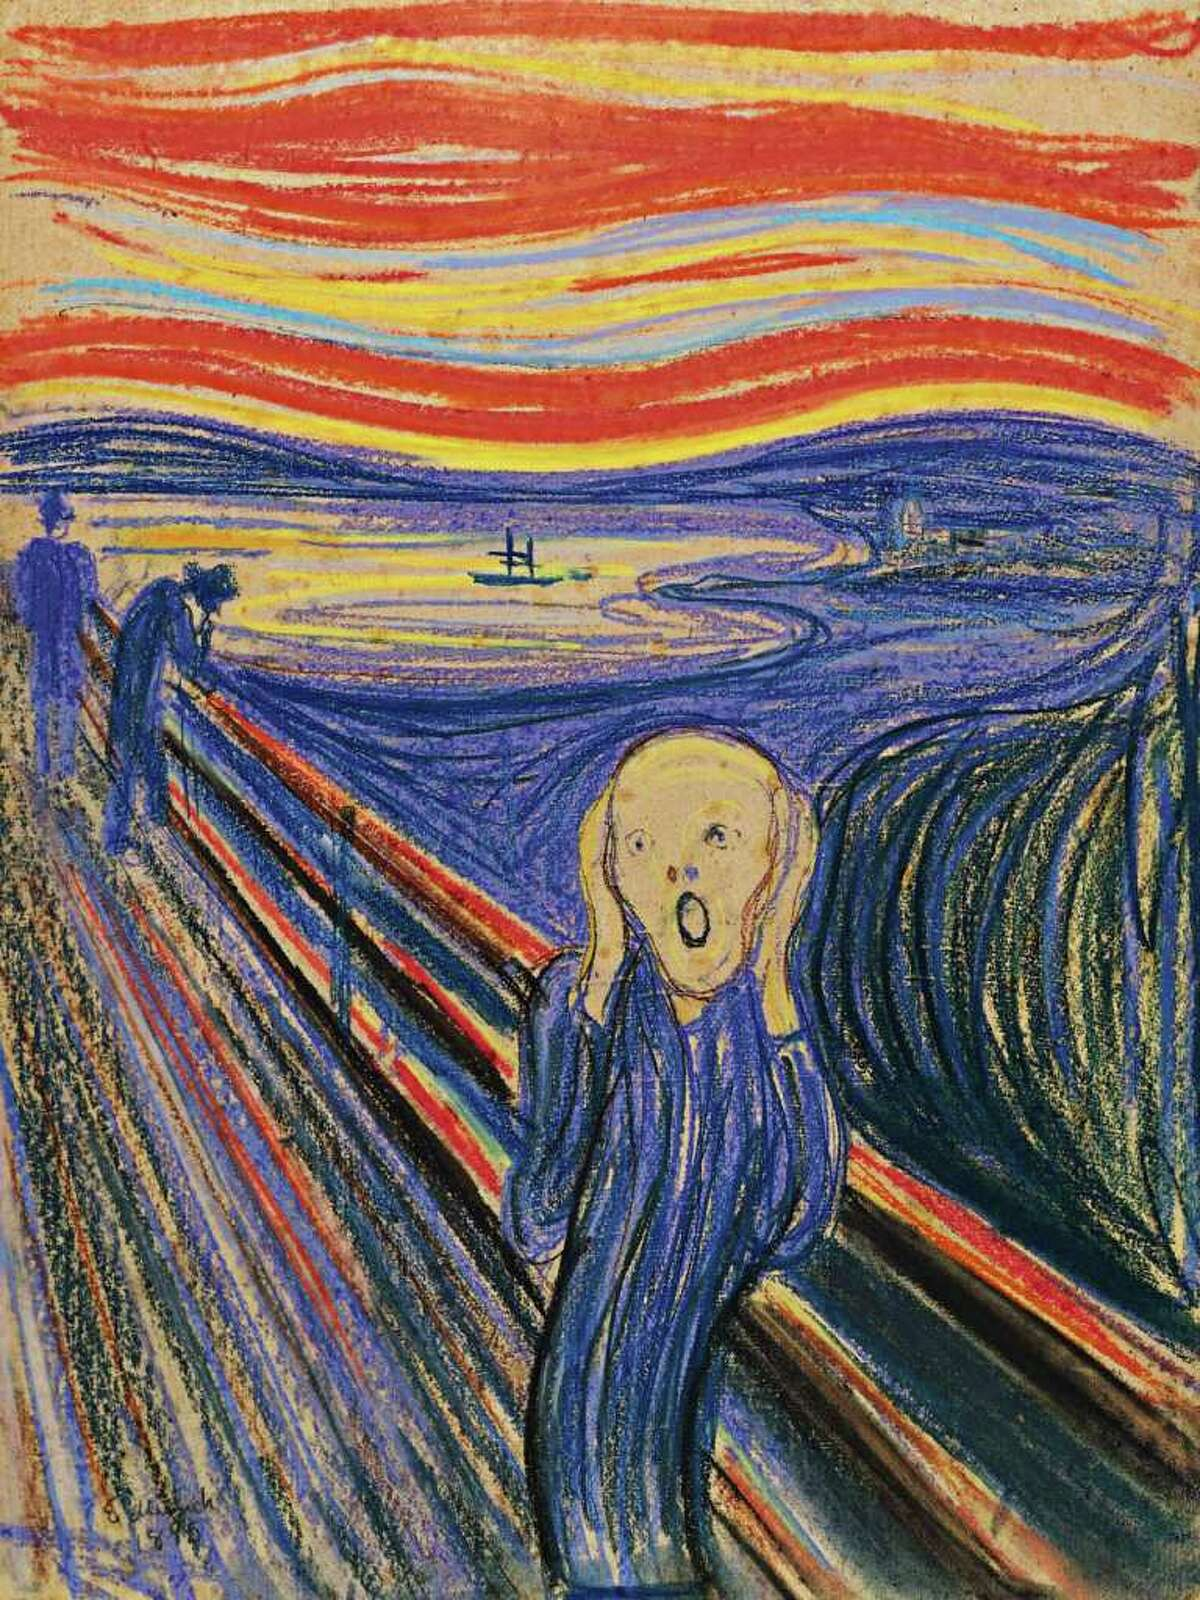 """Here's a look at some pricey paintings. This photo provided by Sotheby's shows """"The Scream"""" by Norwegian painter Edvard Munch. The work, which dates from 1895 and is one of four versions of the composition, will lead Sotheby's Impressionist & Modern Art Evening Sale in New York on May 2, 2012. The price could exceed $80 million."""